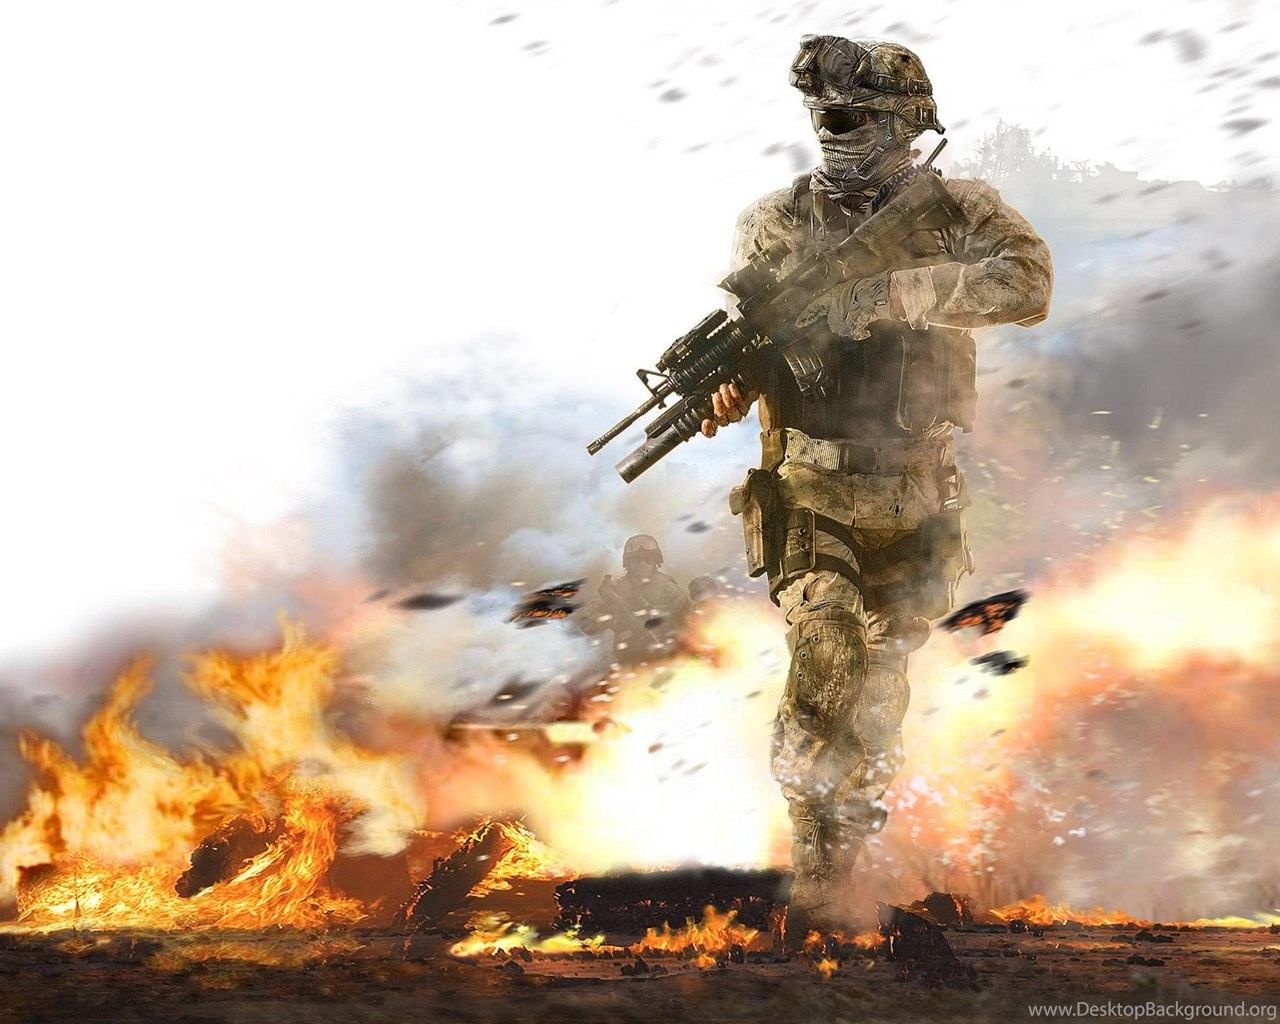 Army Rangers Wallpaper: U.s. Army Rangers Wallpapers Desktop Background